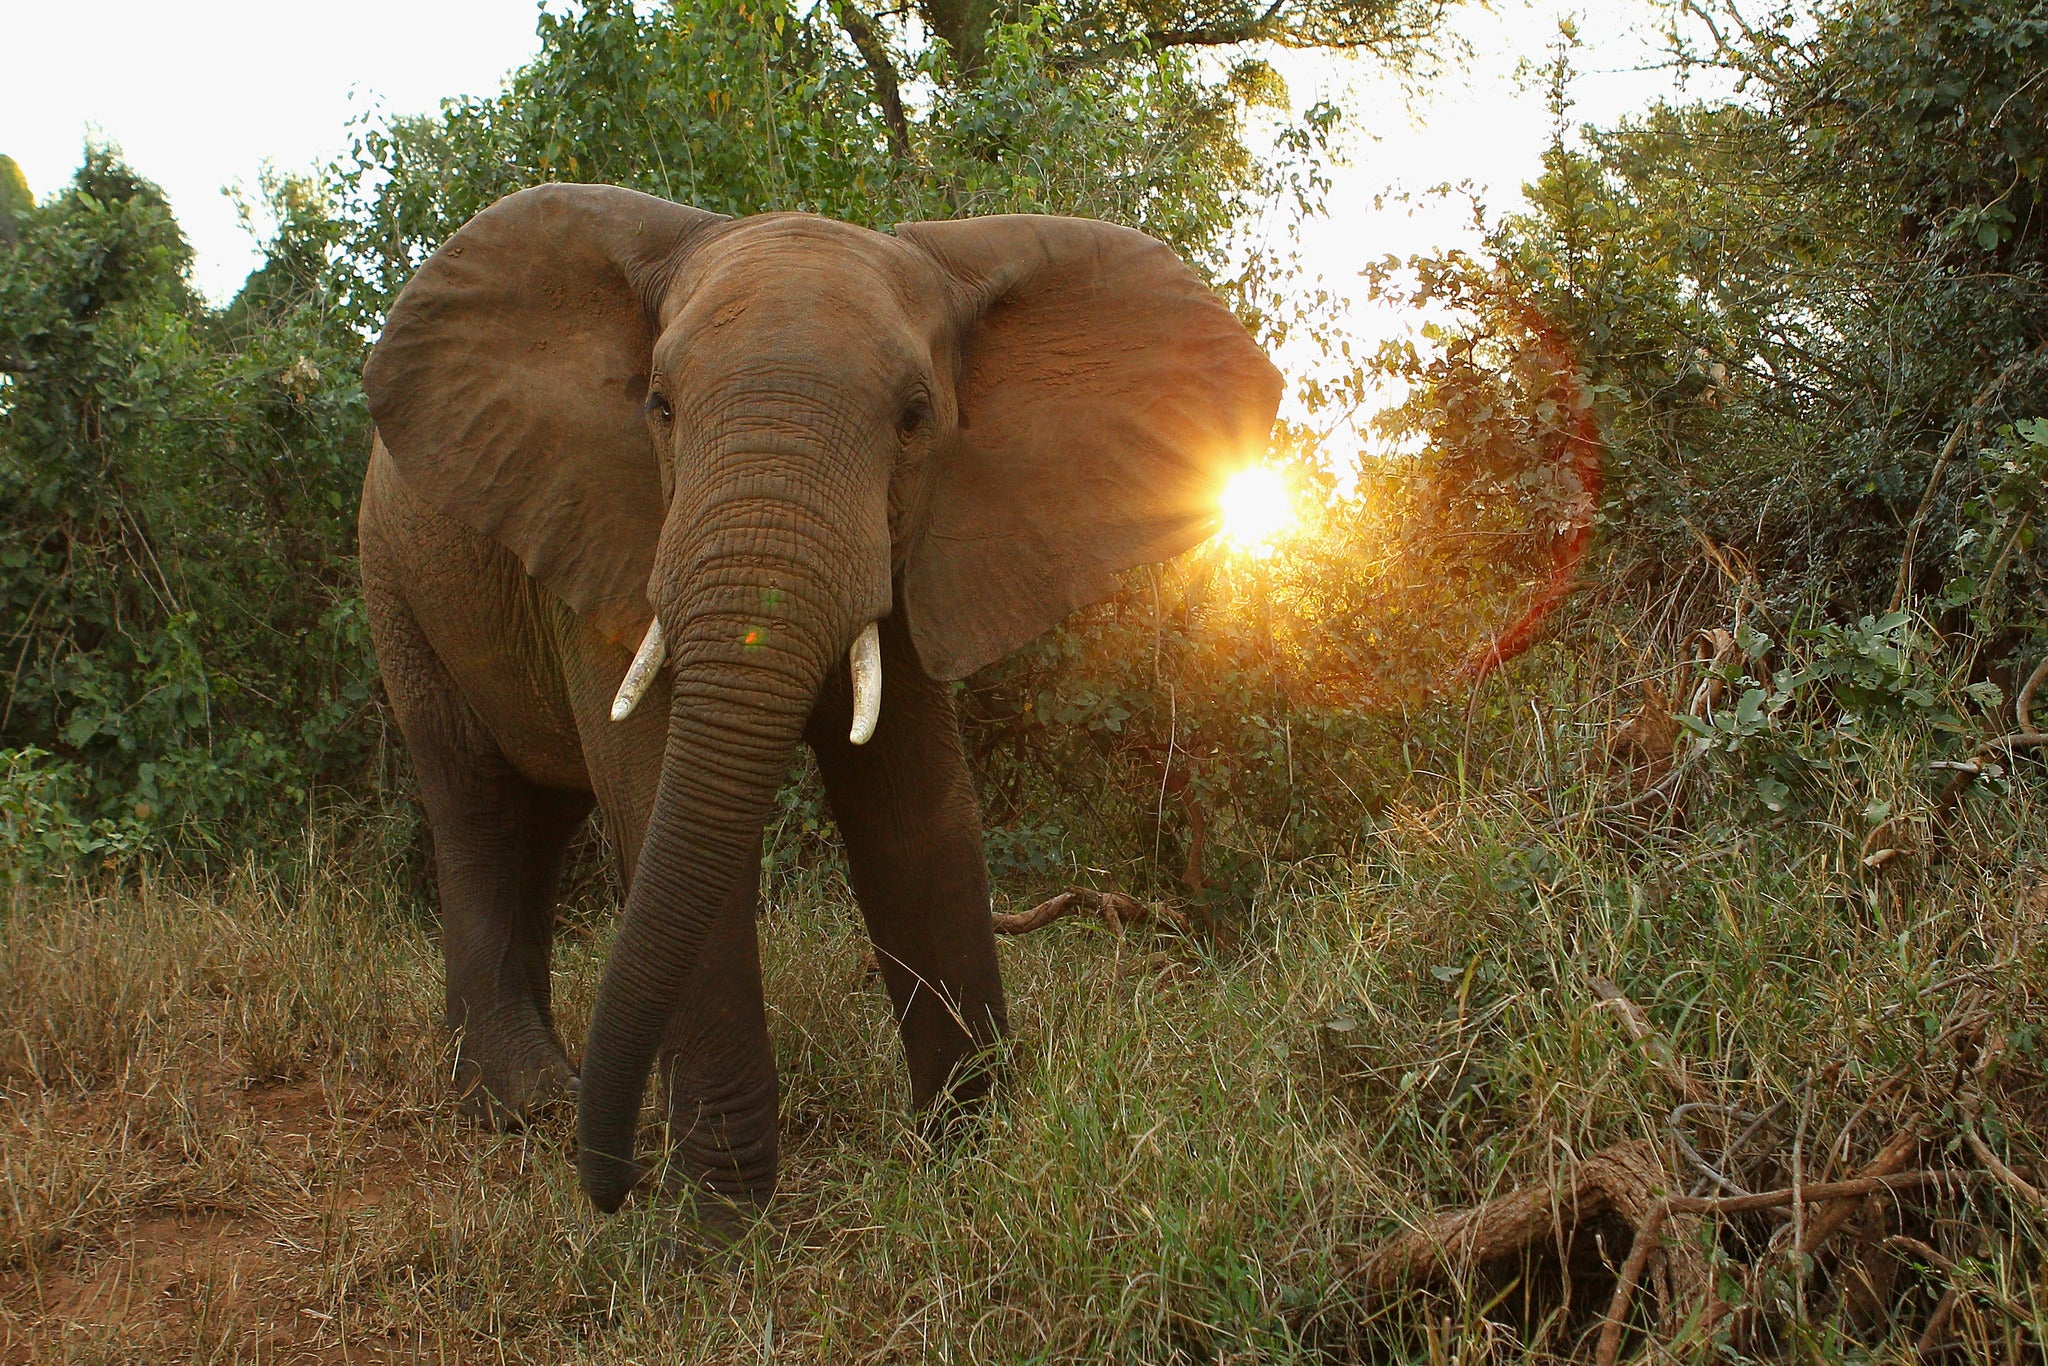 Elephant Appeal: The continent I fell in love with may be changed ...